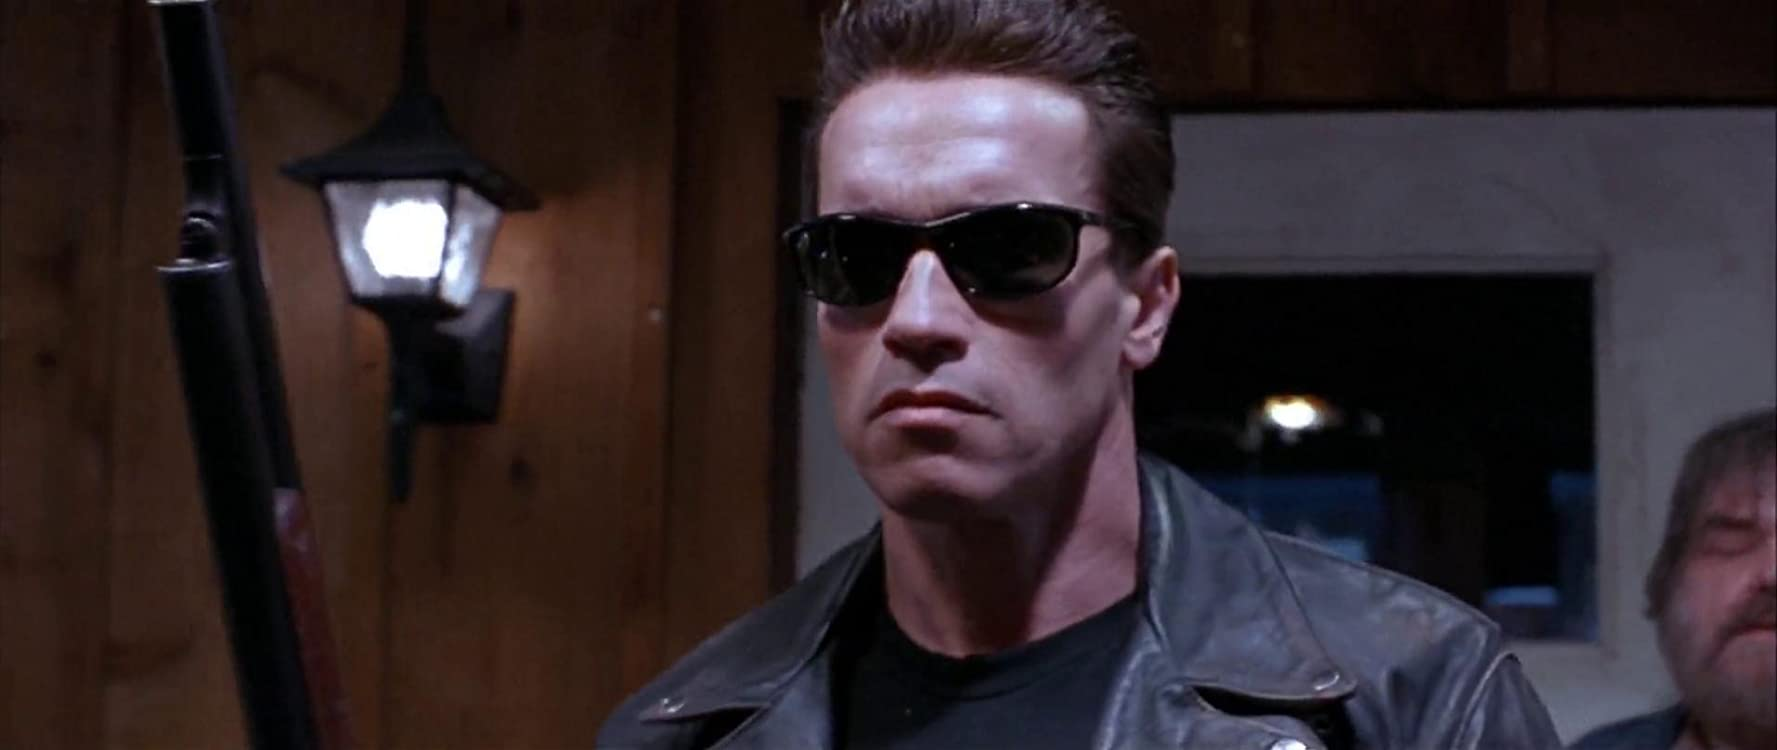 709d9a6ad91 Terminator 2: Judgment Day (1991)